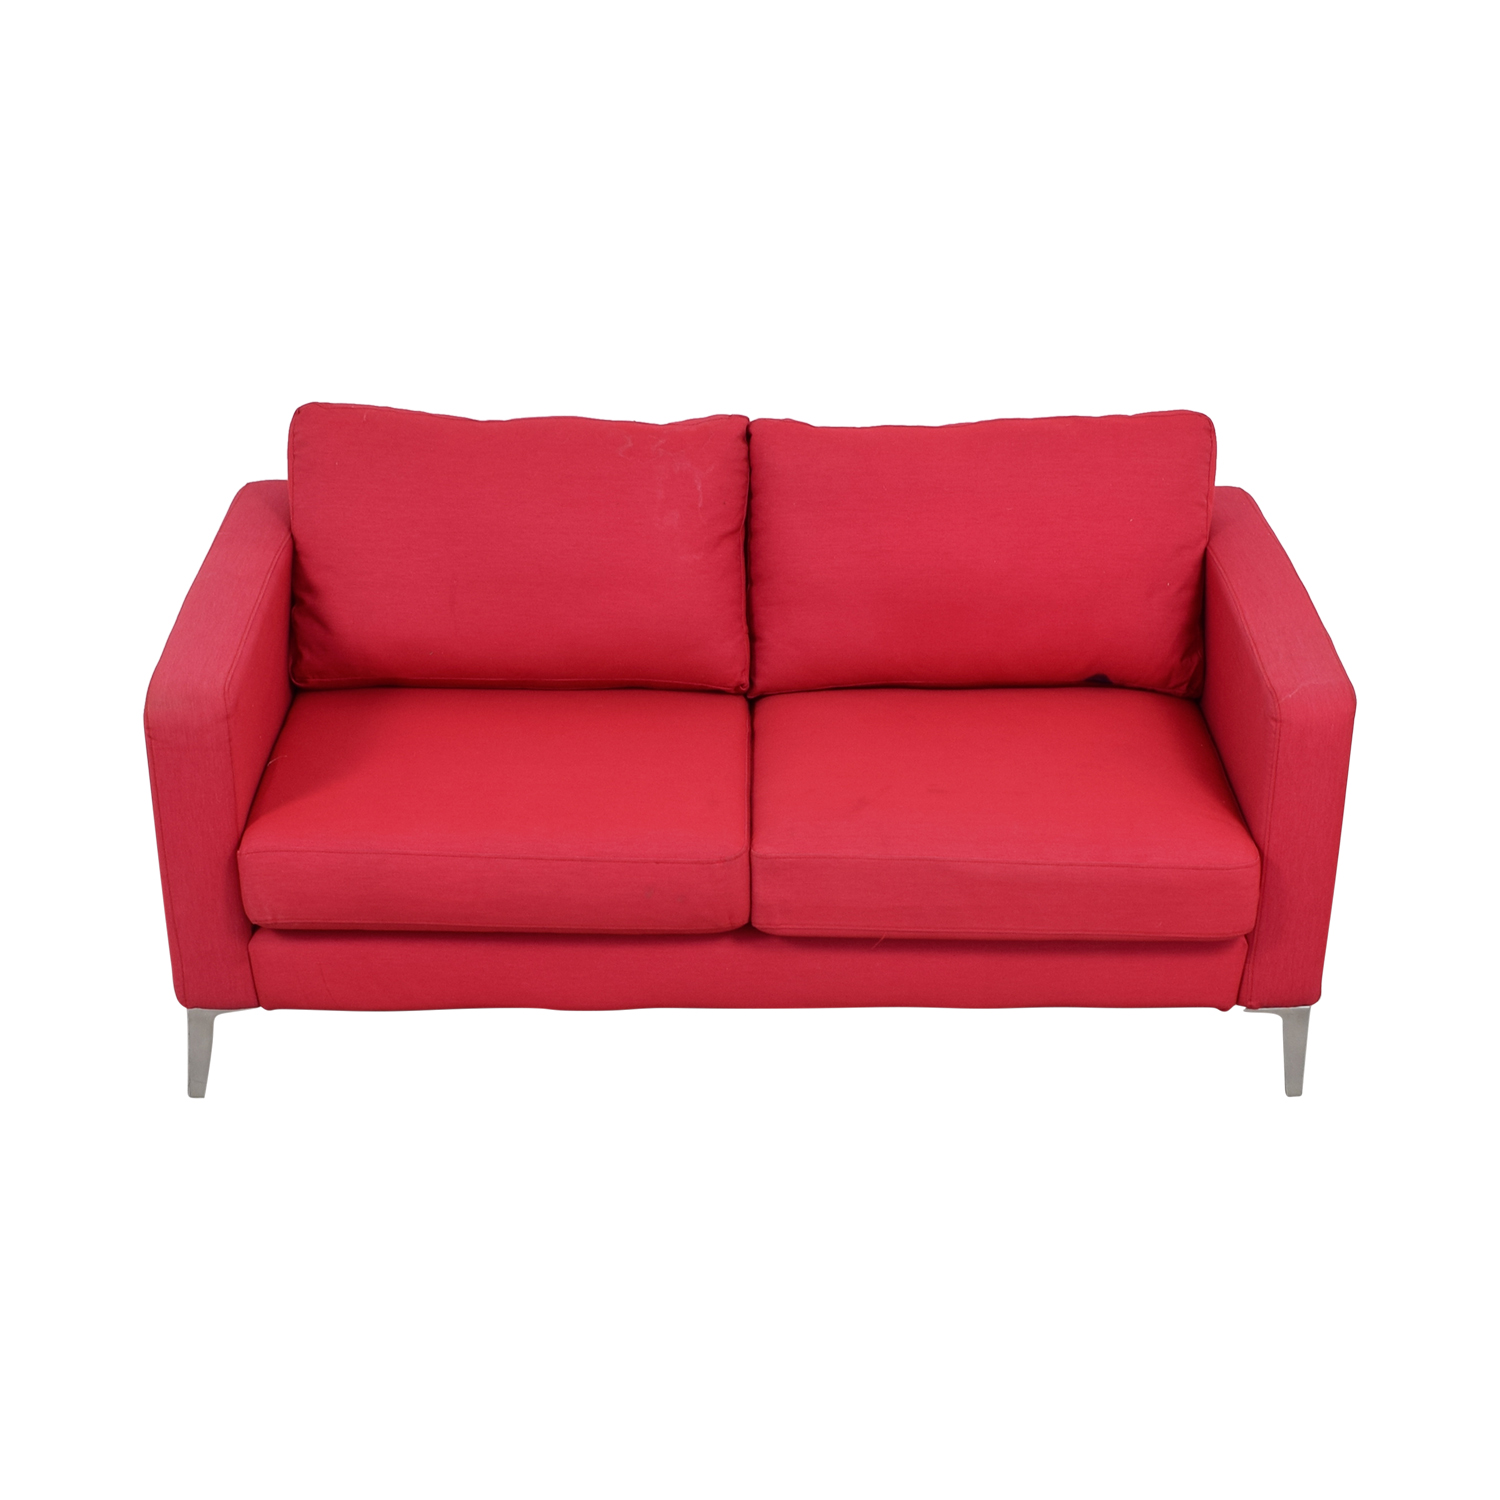 IKEA IKEA Red Two-Cushion Love Seat Loveseats